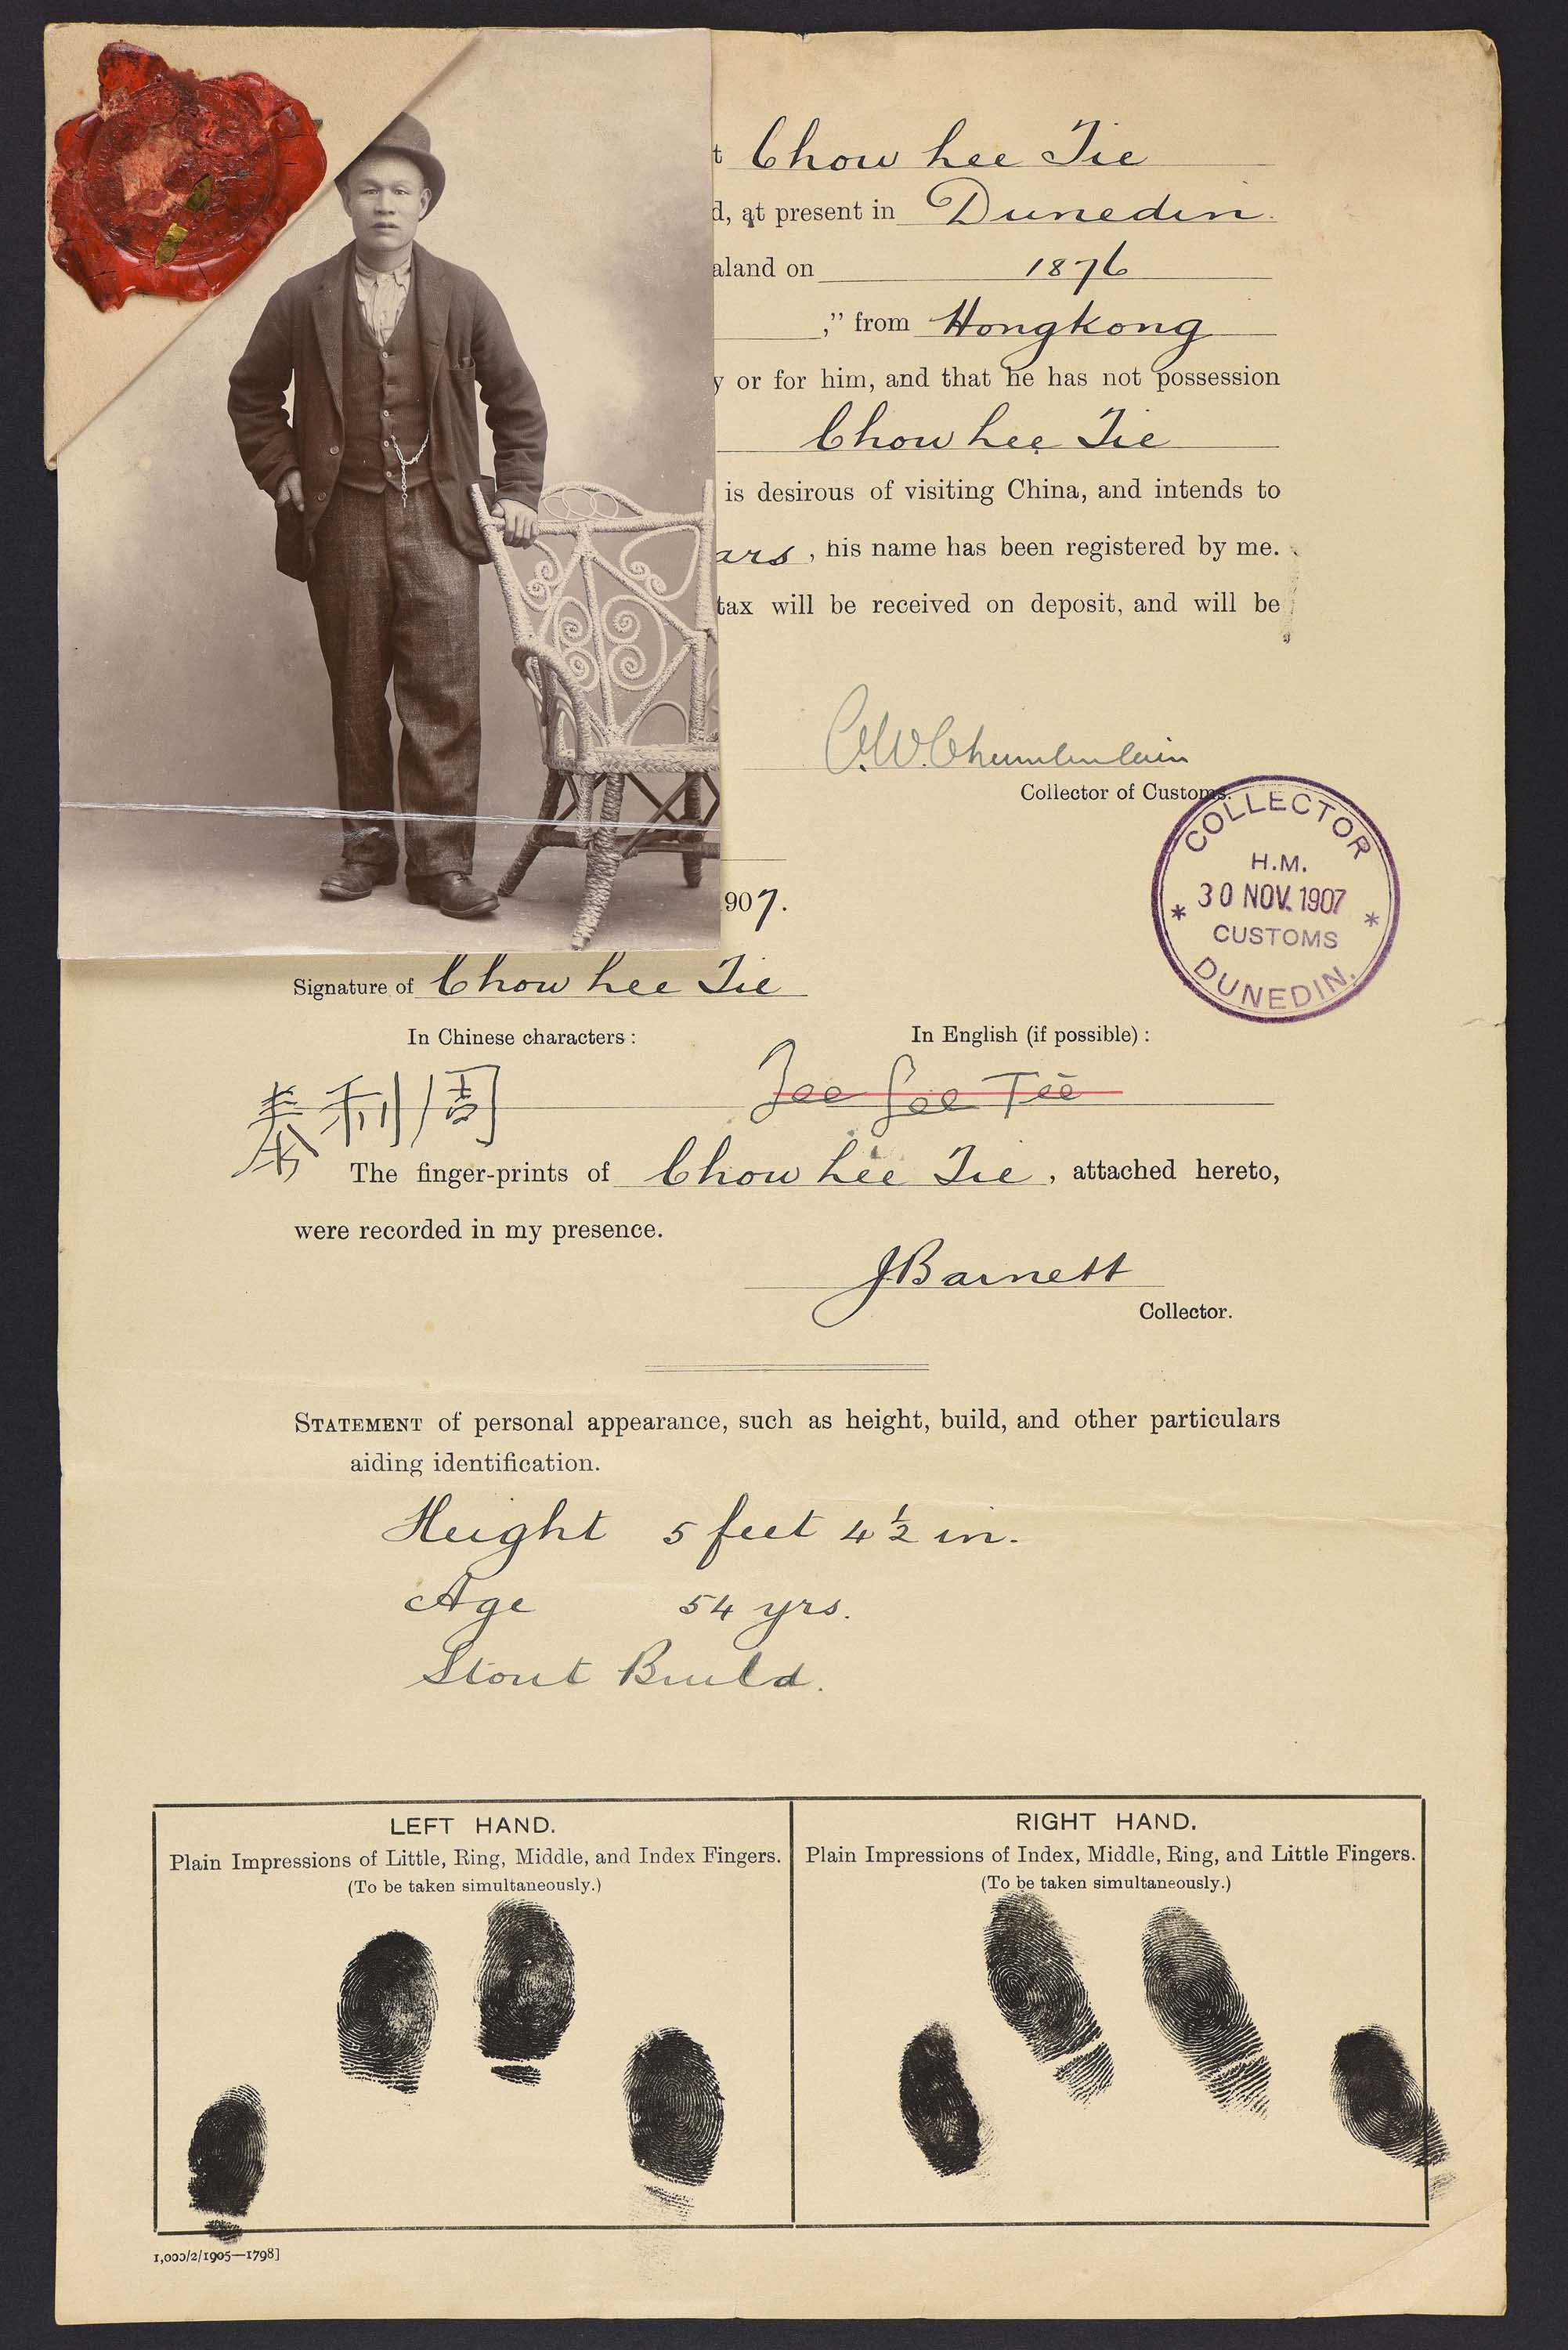 Sepia photo of a standing Chinese man attached to his immigration record